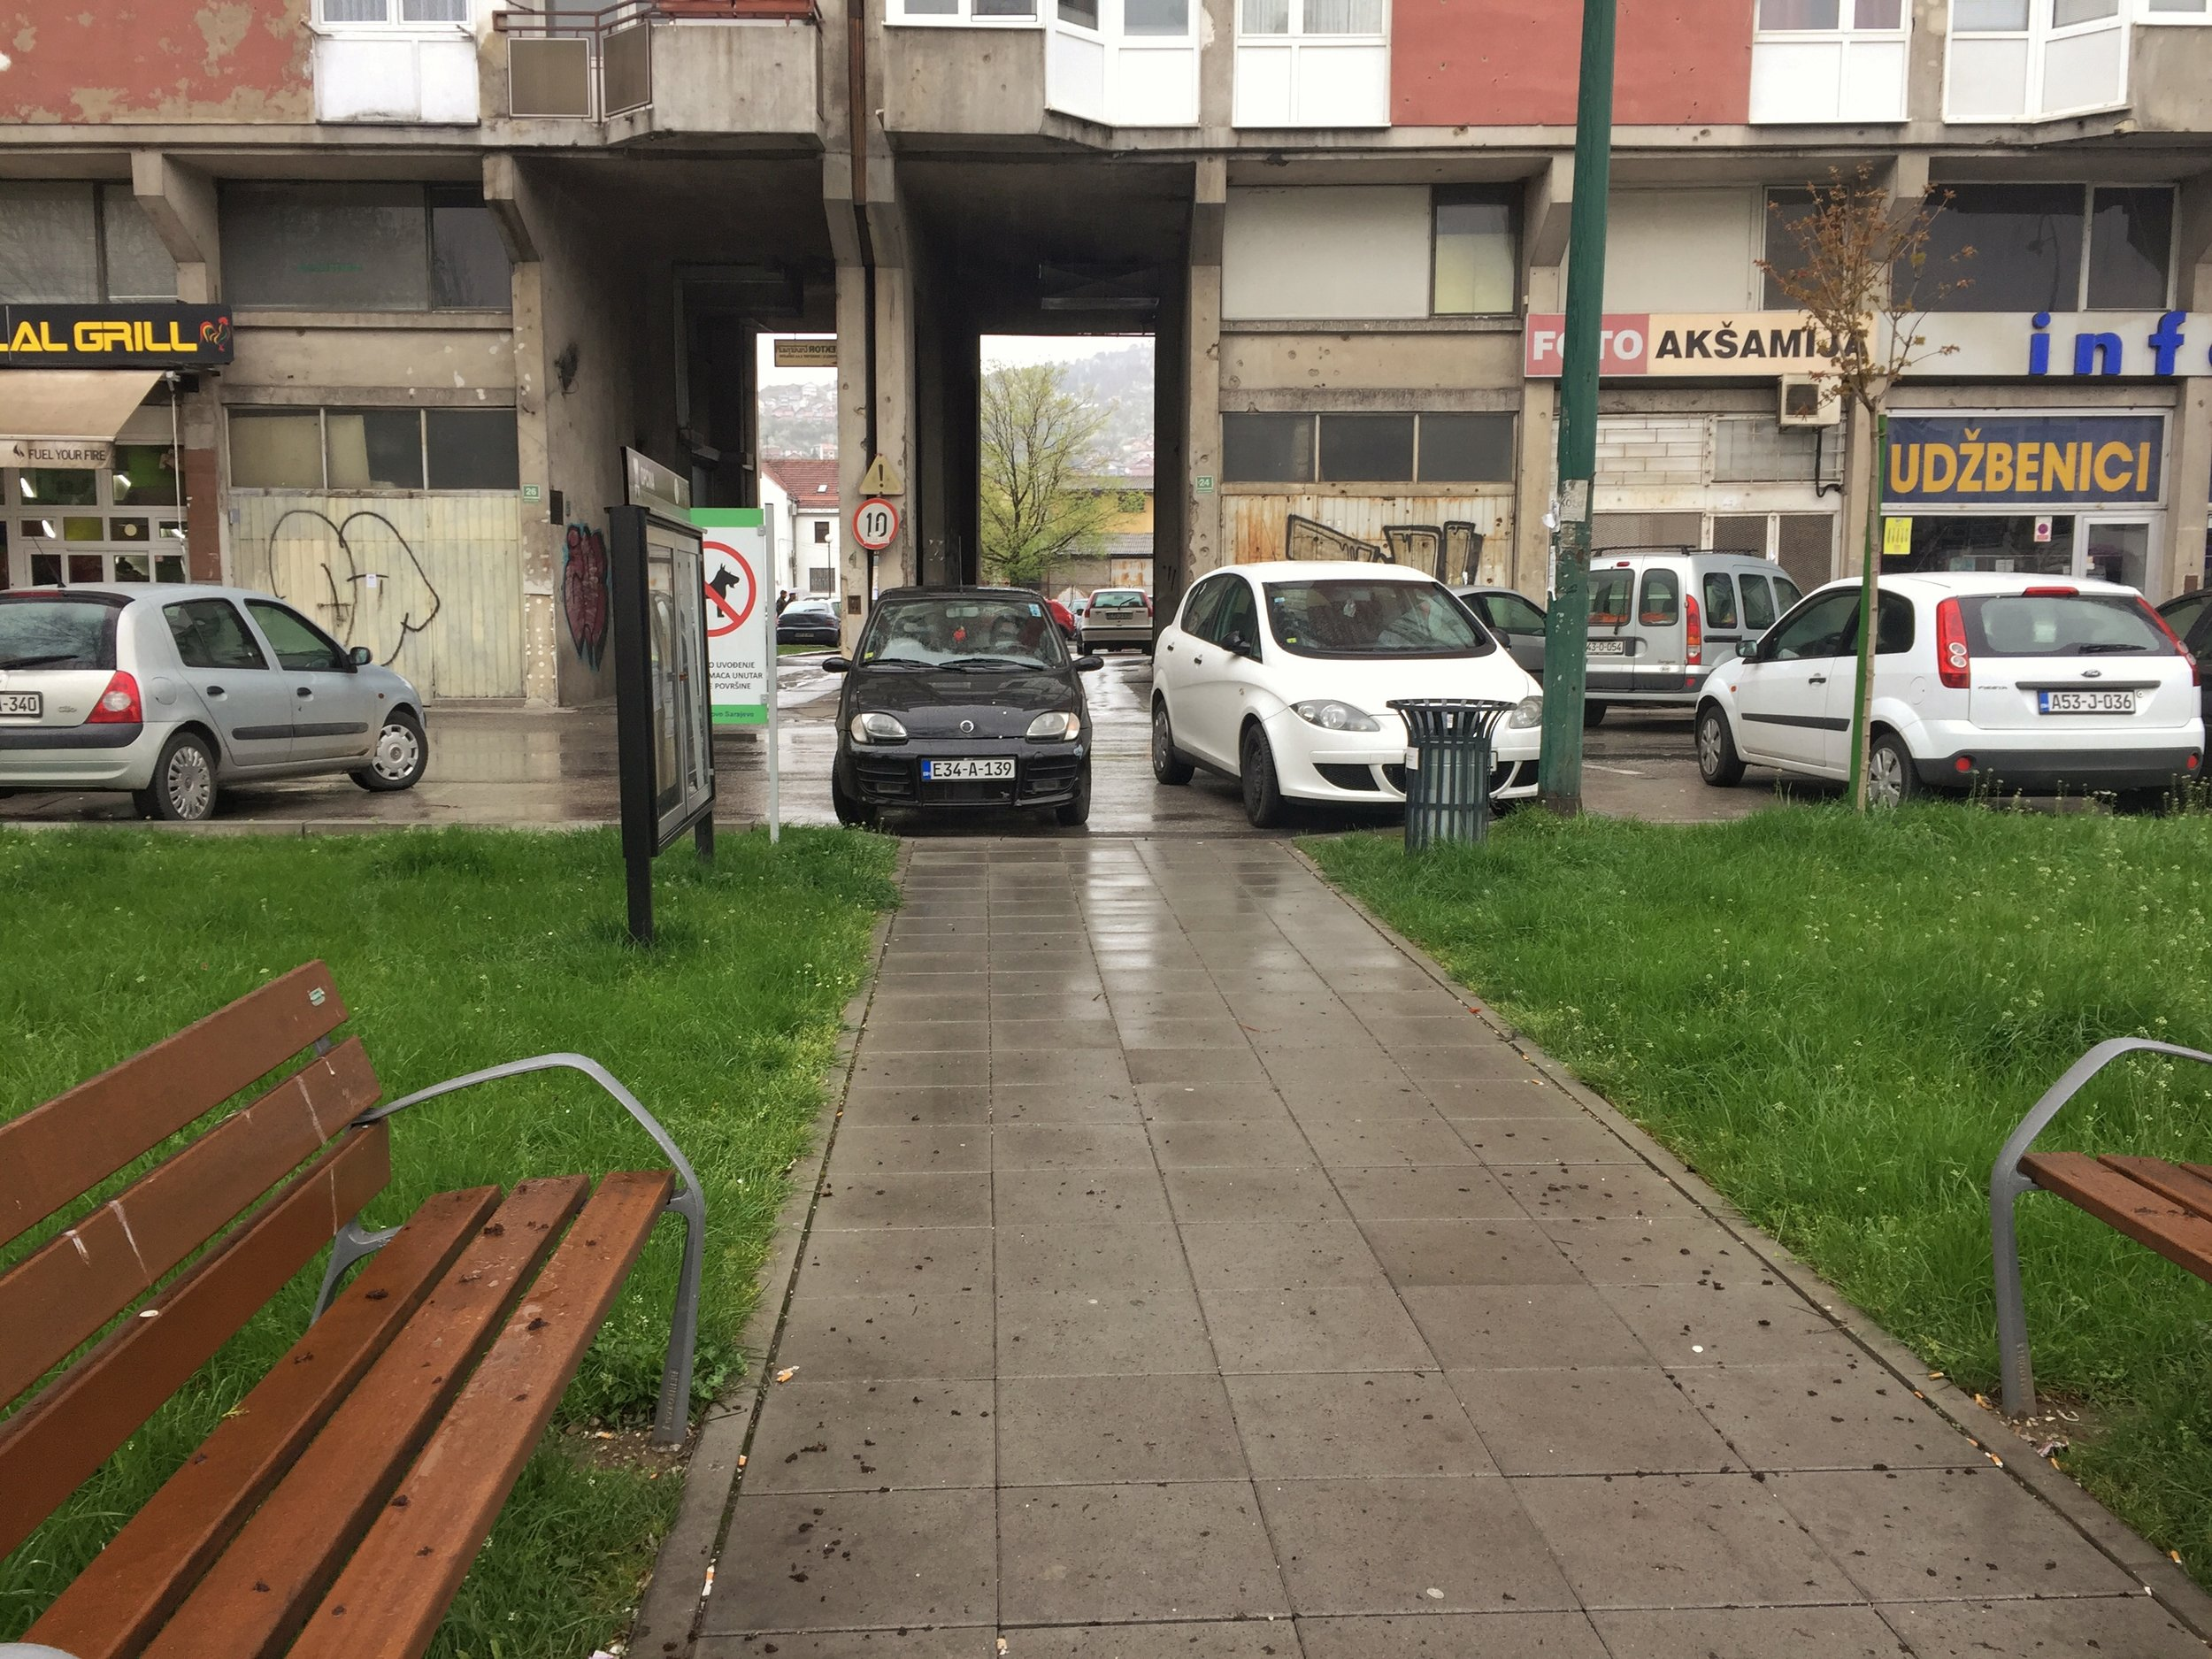 cars can park anywhere, ignoring handicap/pedestrian access points